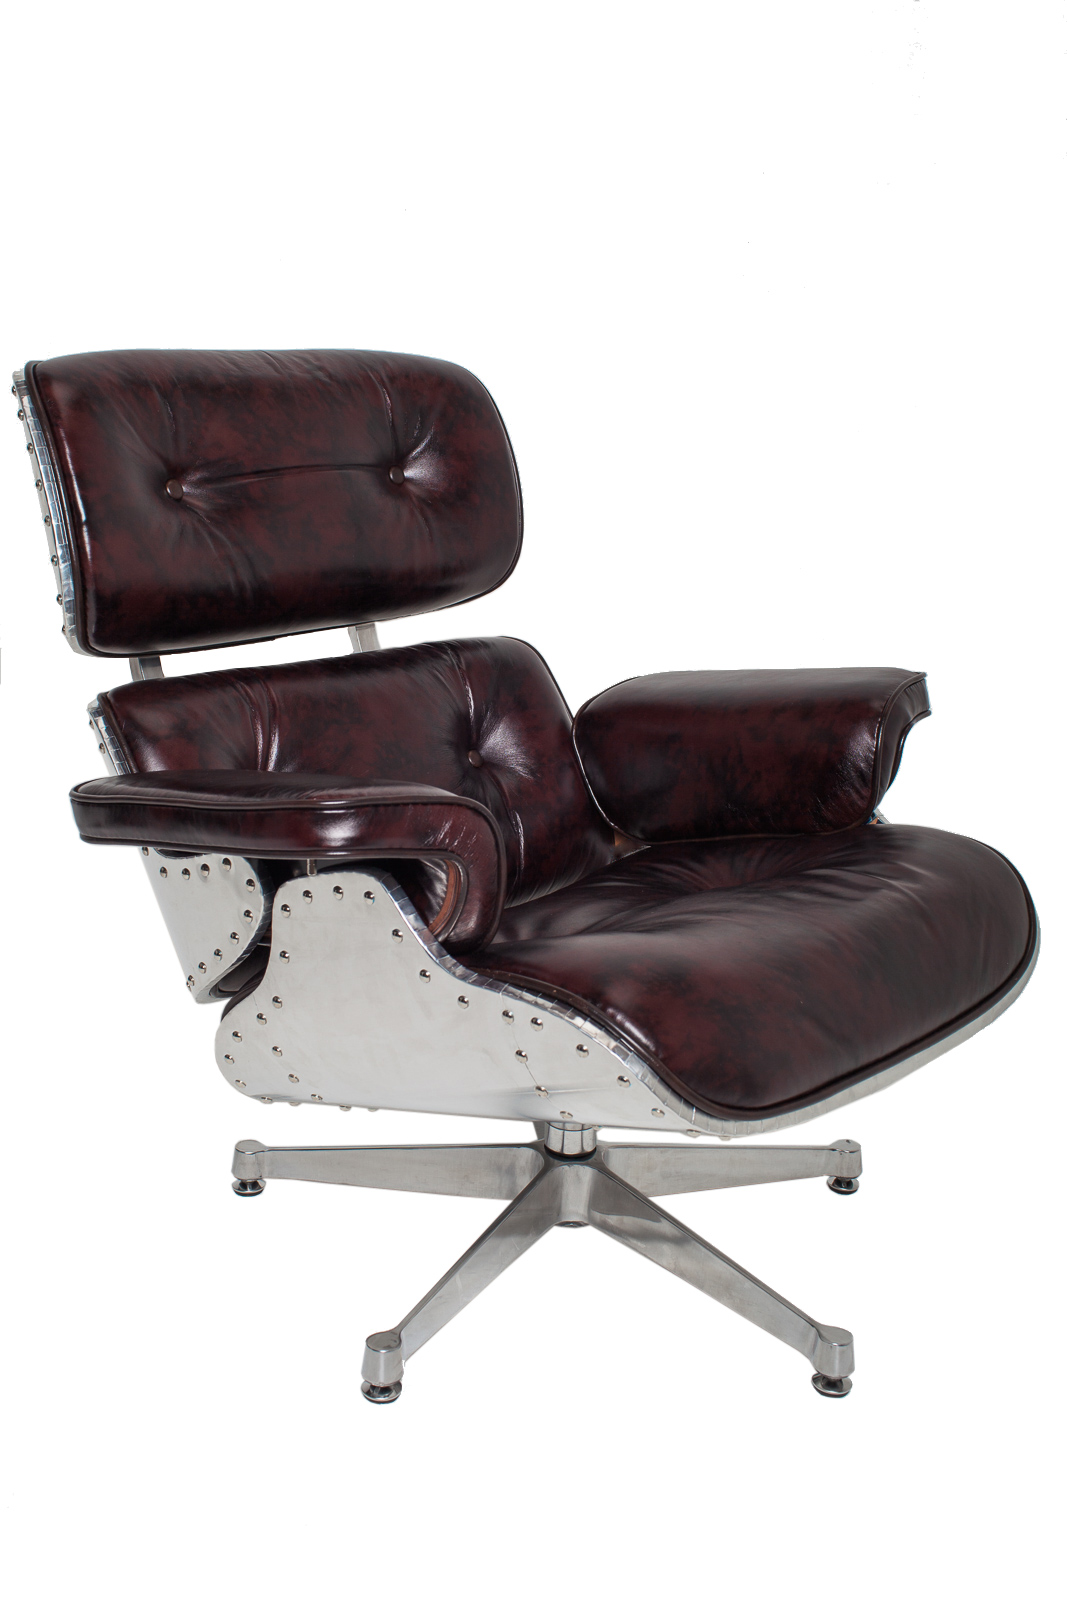 steel lounge chair couch and covers nz new vintage leather aluminum aviator metal eames style